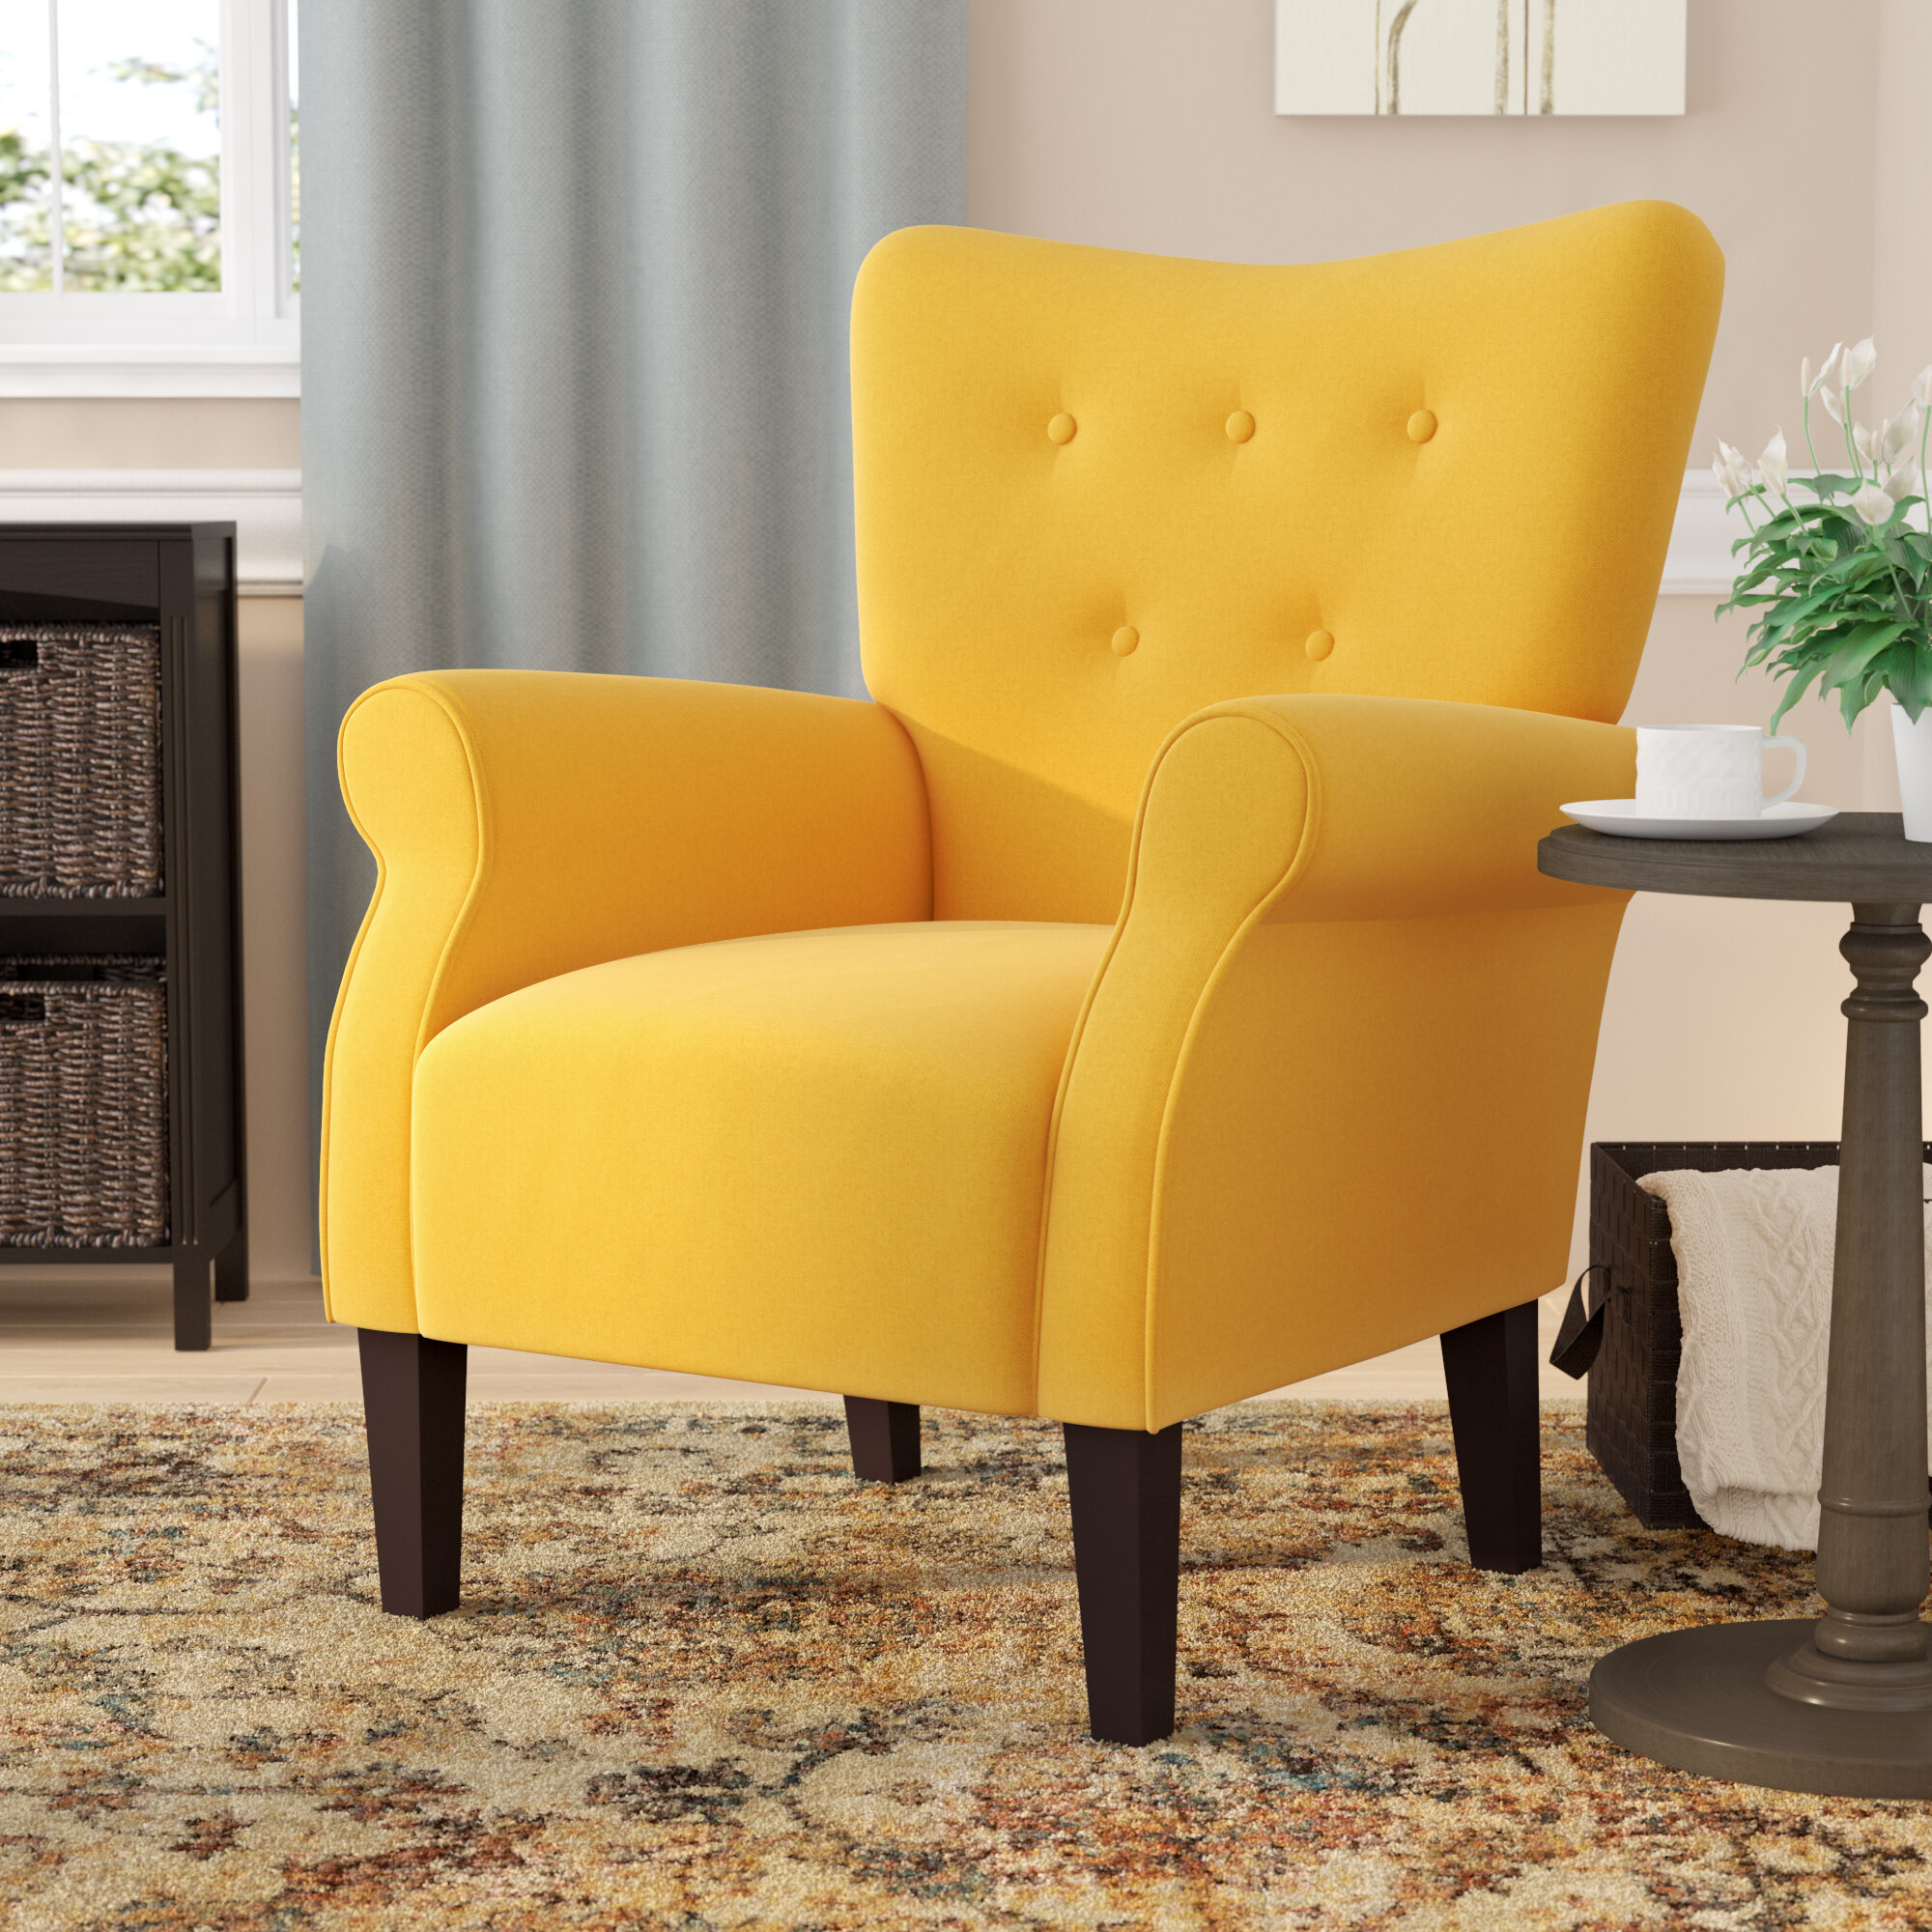 Armchairs | Wayfair With Regard To Oglesby Armchairs (View 10 of 15)